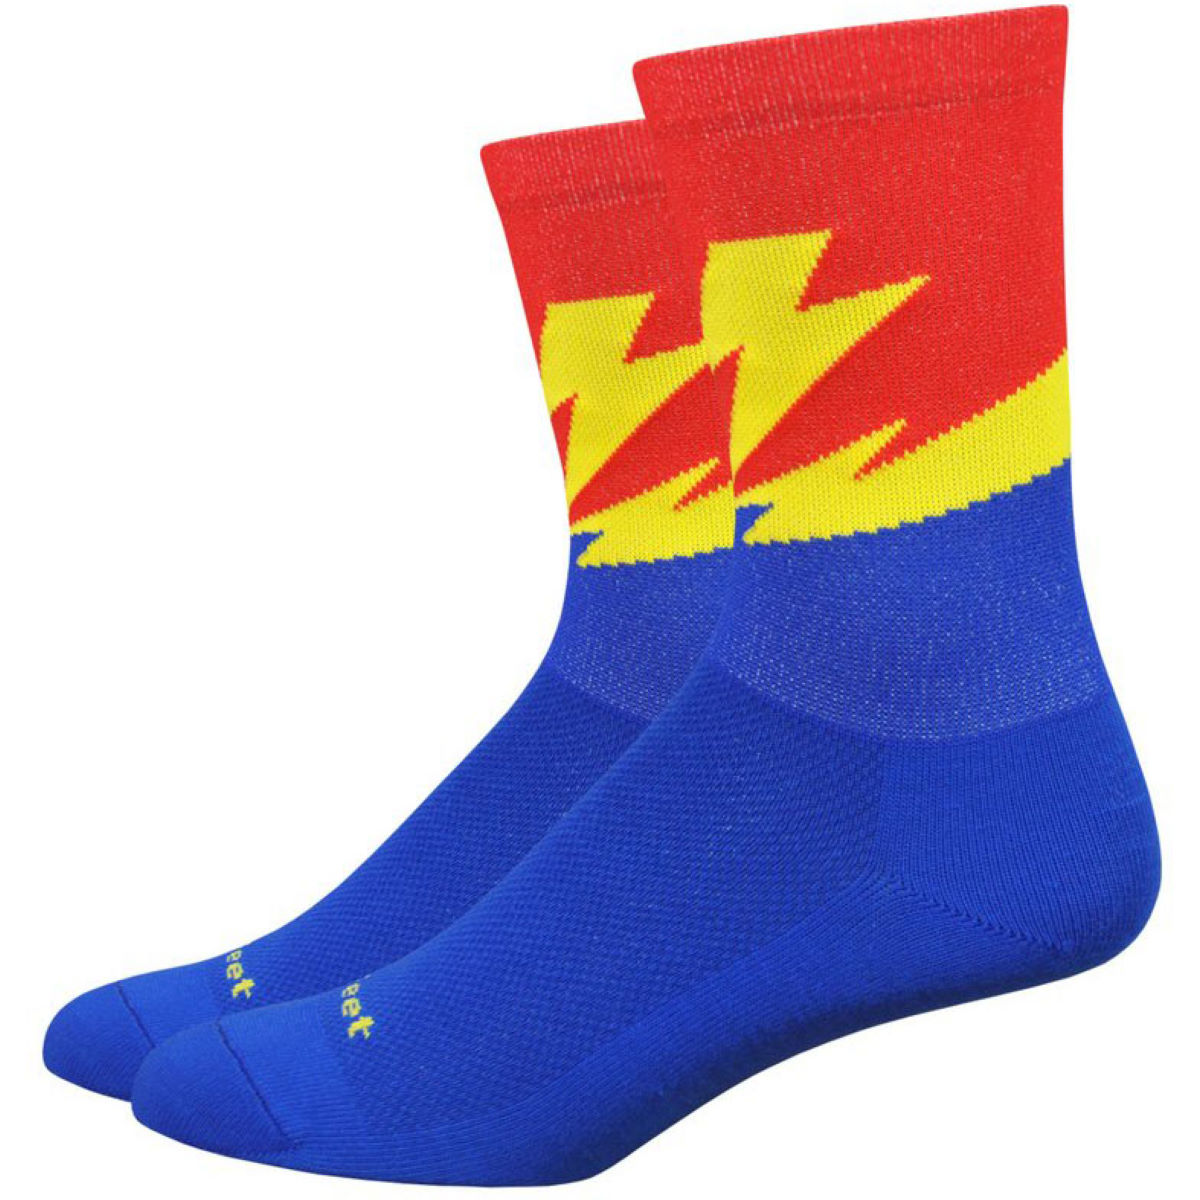 "DeFeet DeFeet Aireator Womens 5"" Flash Socks   Socks"